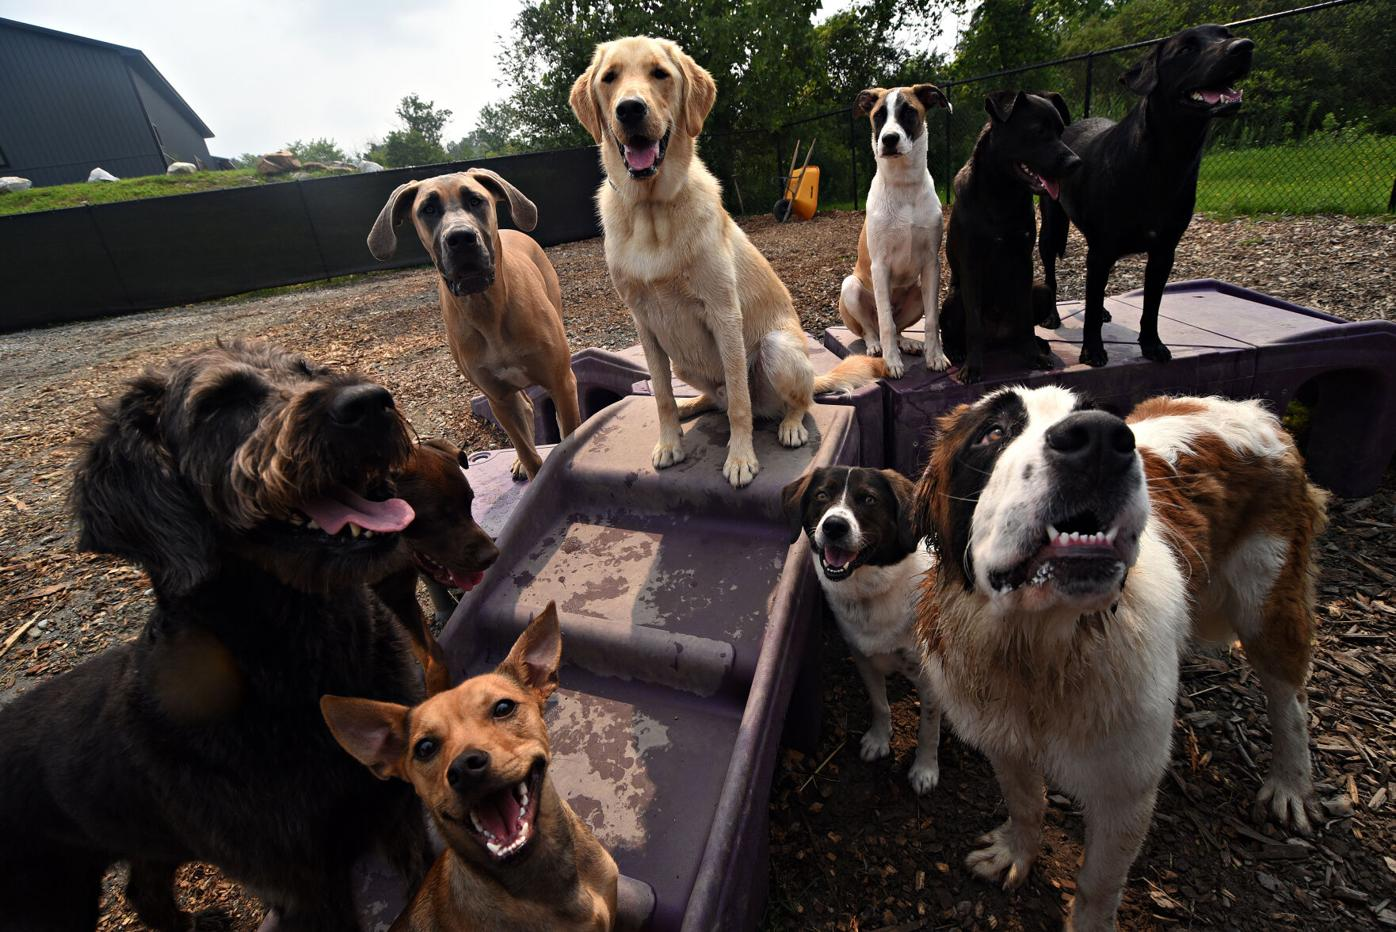 Ten dogs pose in an outdoor play yard around a purple climbing structure